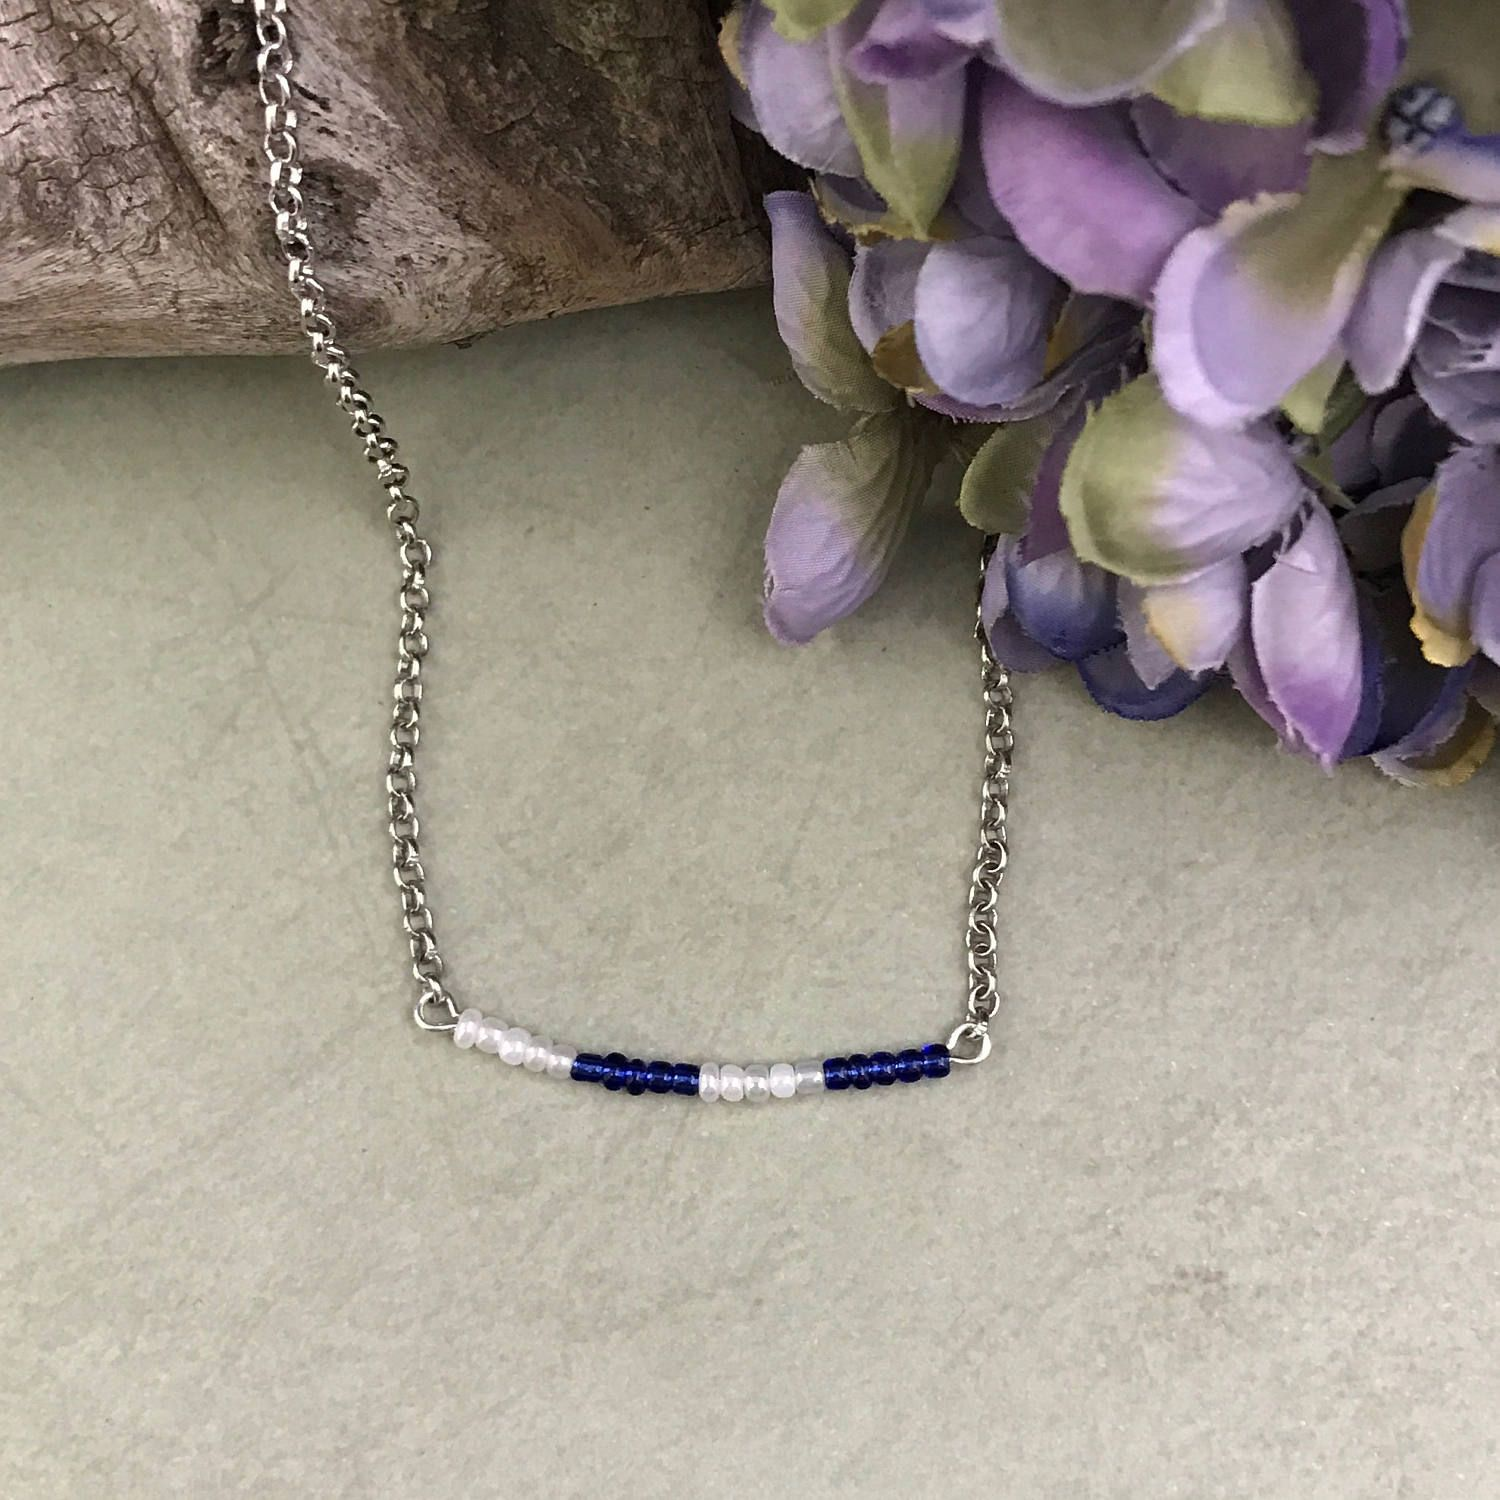 Beaded Bar Necklacegift Under 20BohoTiny Bead NecklaceBlueWhiteRolo Gift For HerWedding JewelryBirthday